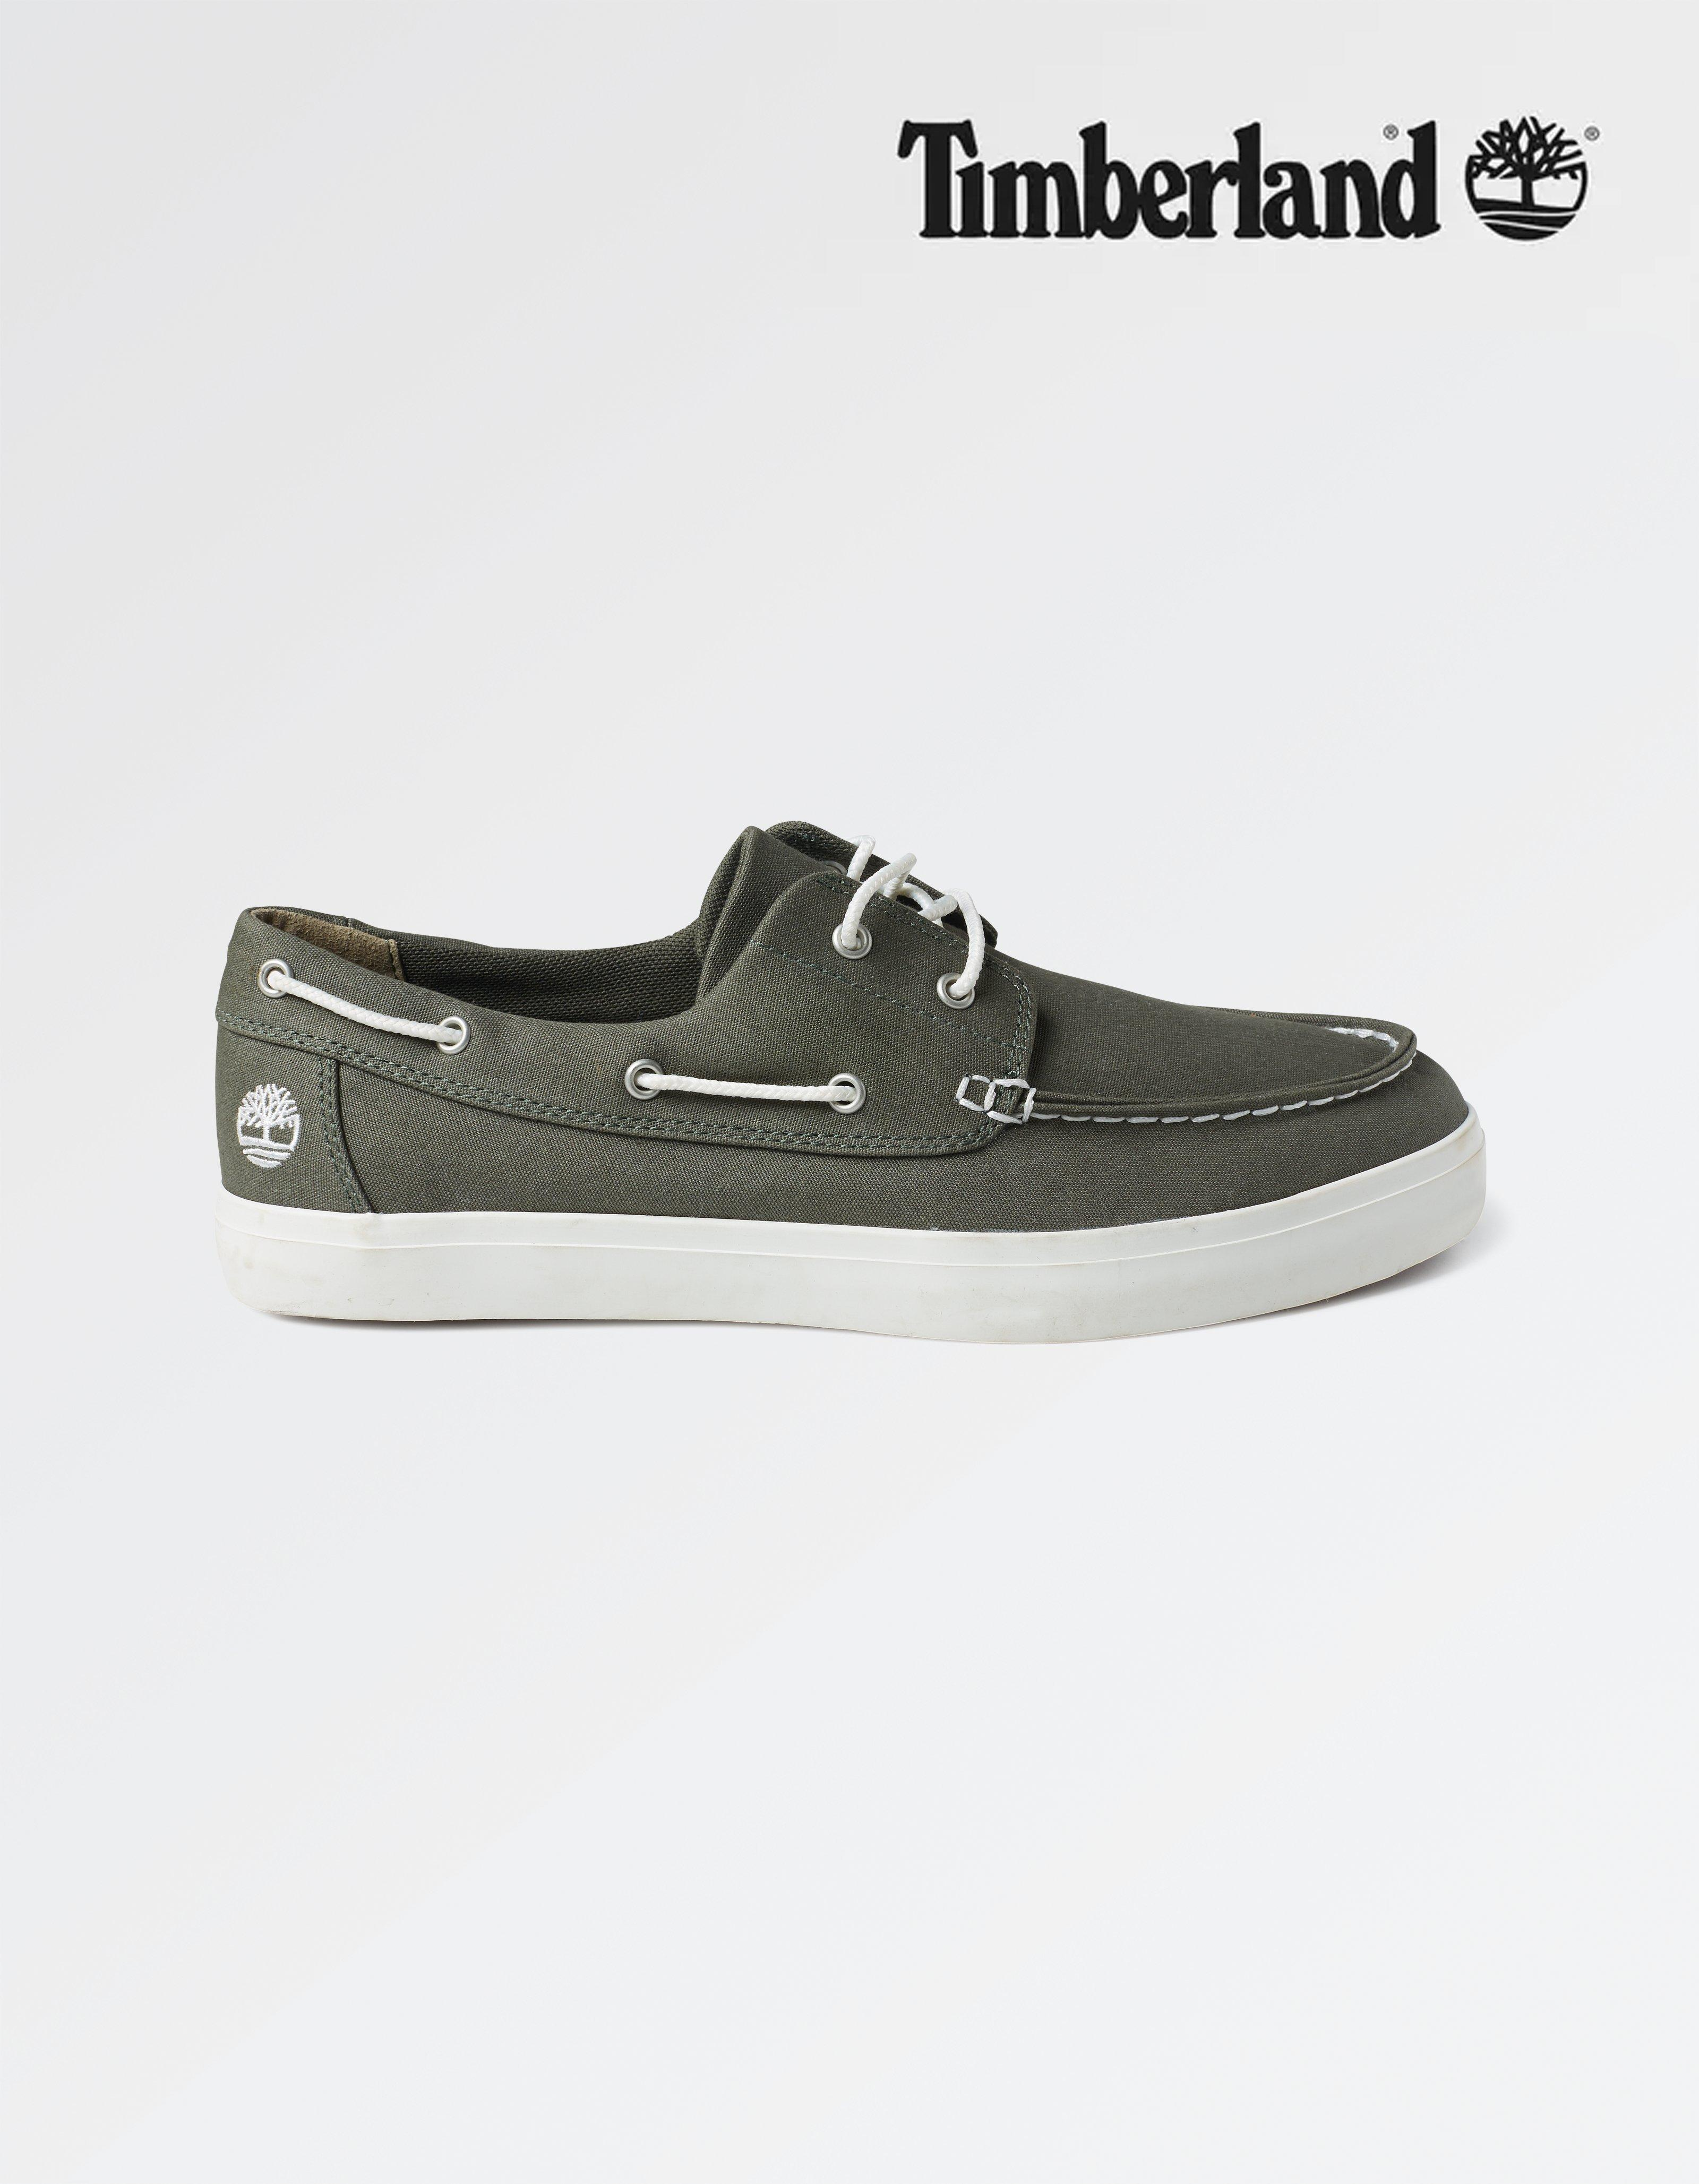 Timberland Canvas Boat Shoes